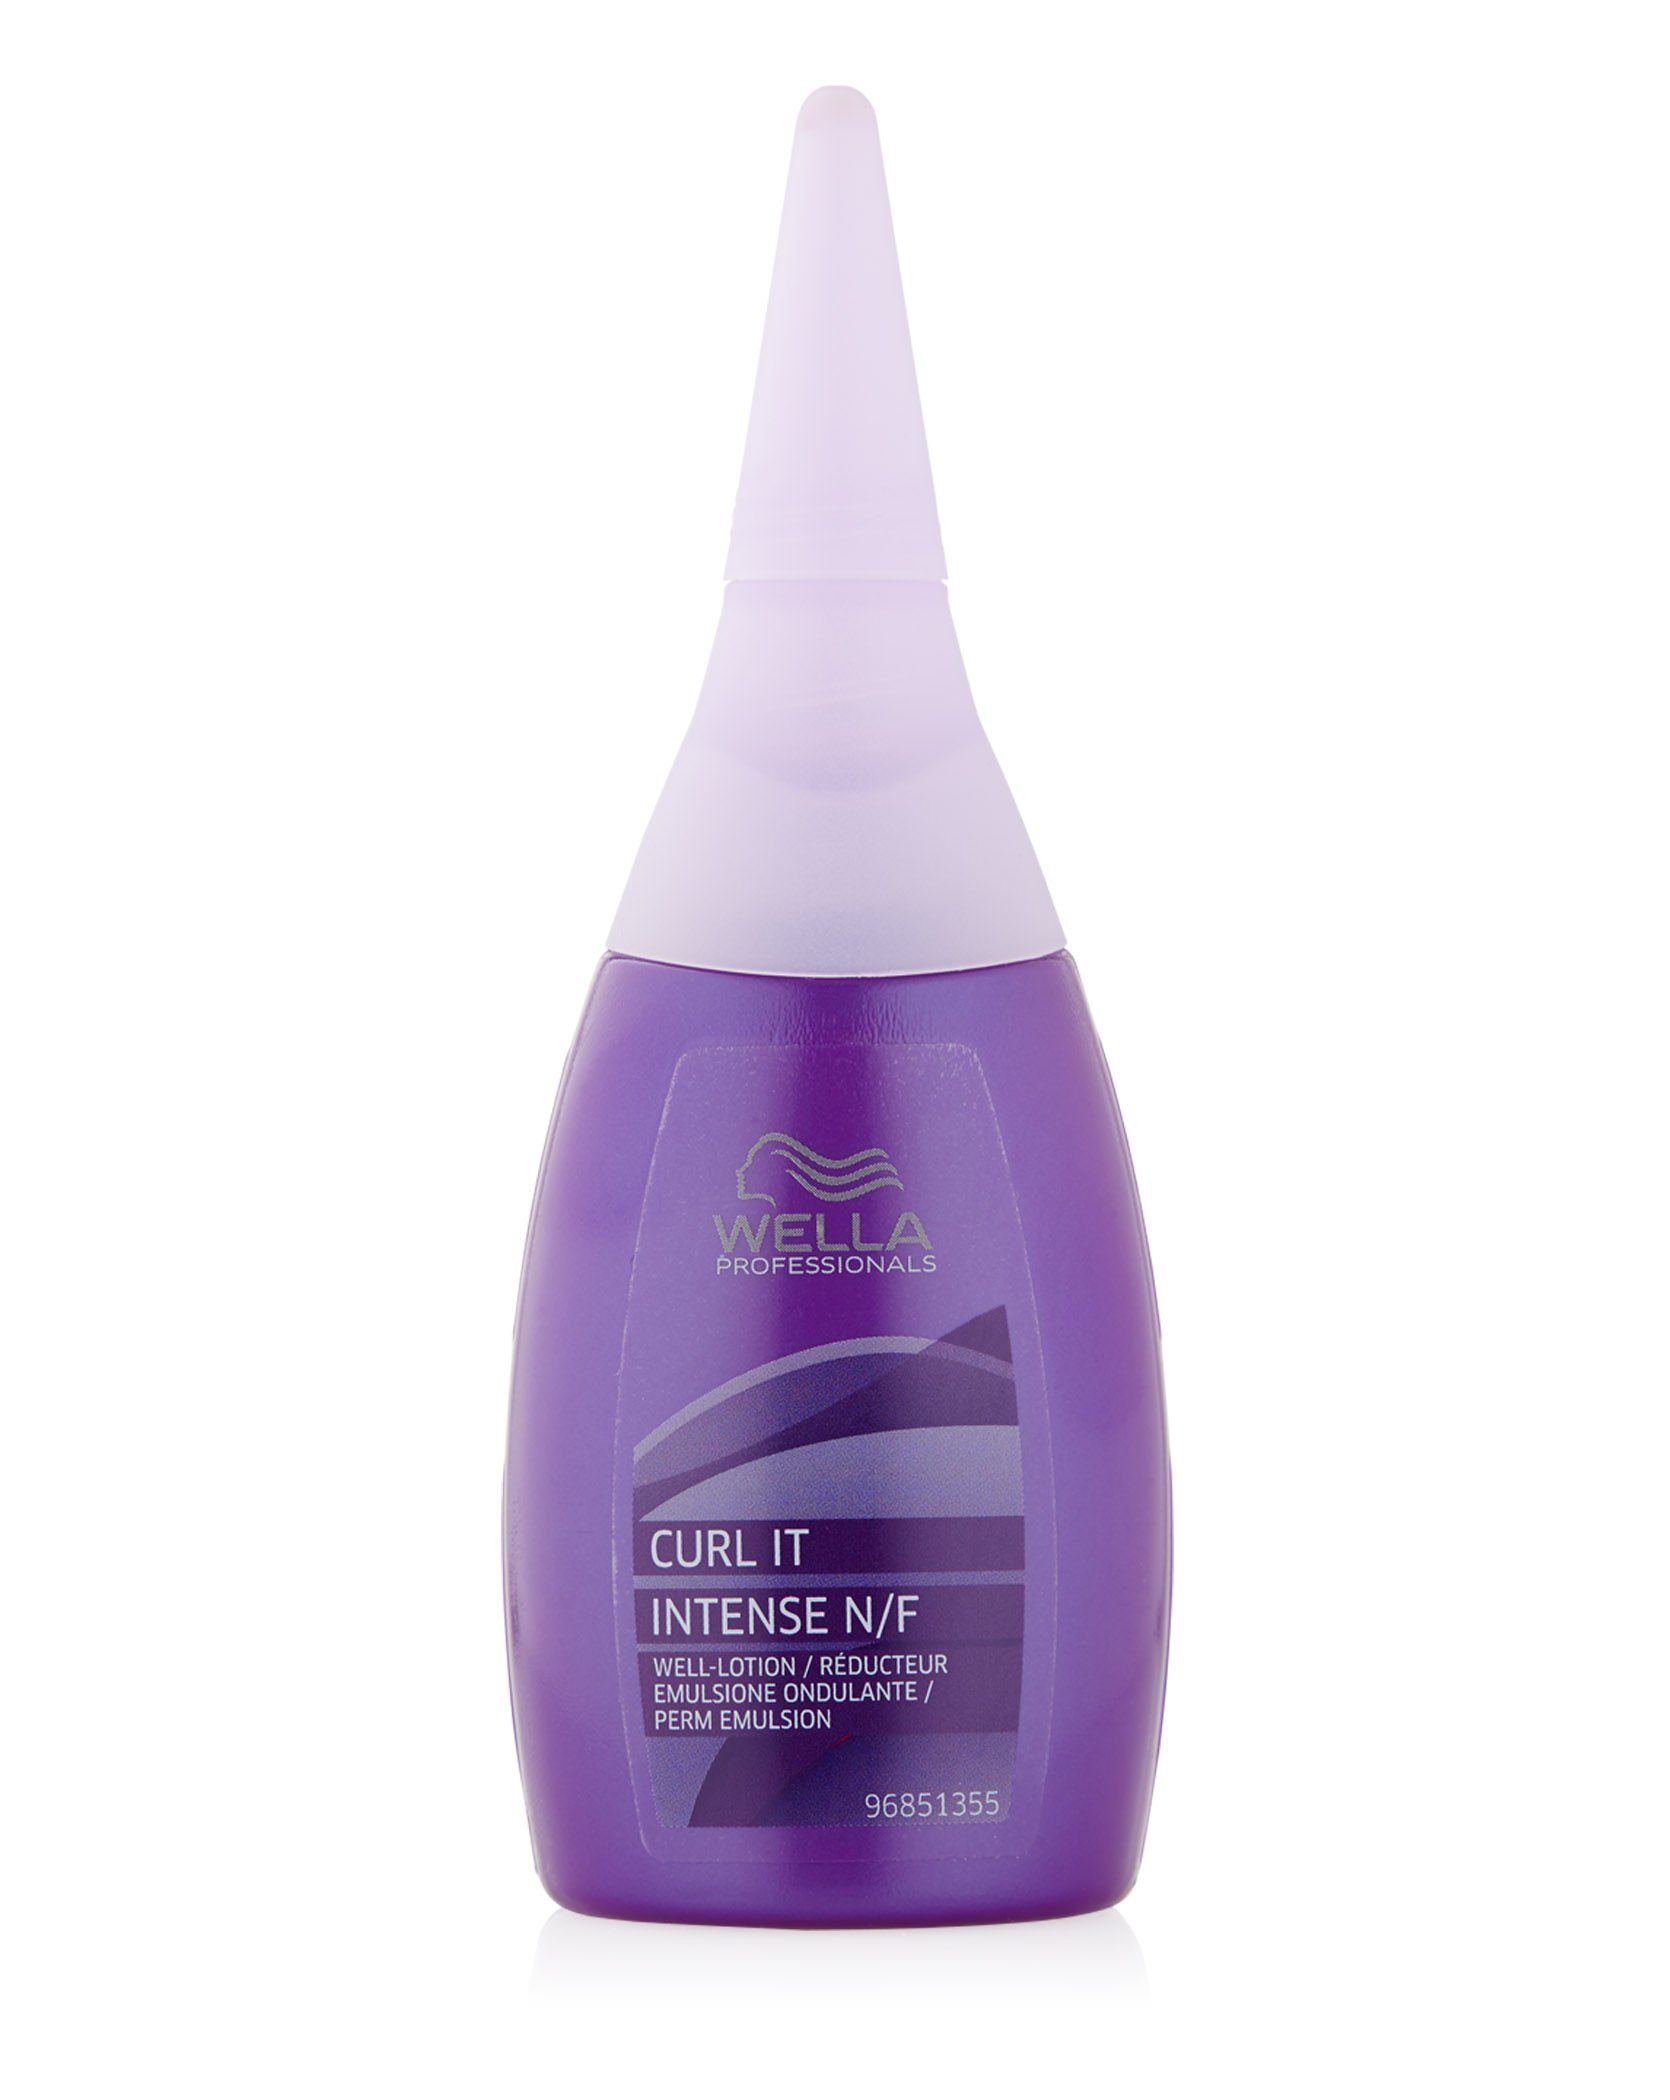 Wella Professionals Well-Lotion »Permanentes Styling Curl It Baseline Intense N/F«